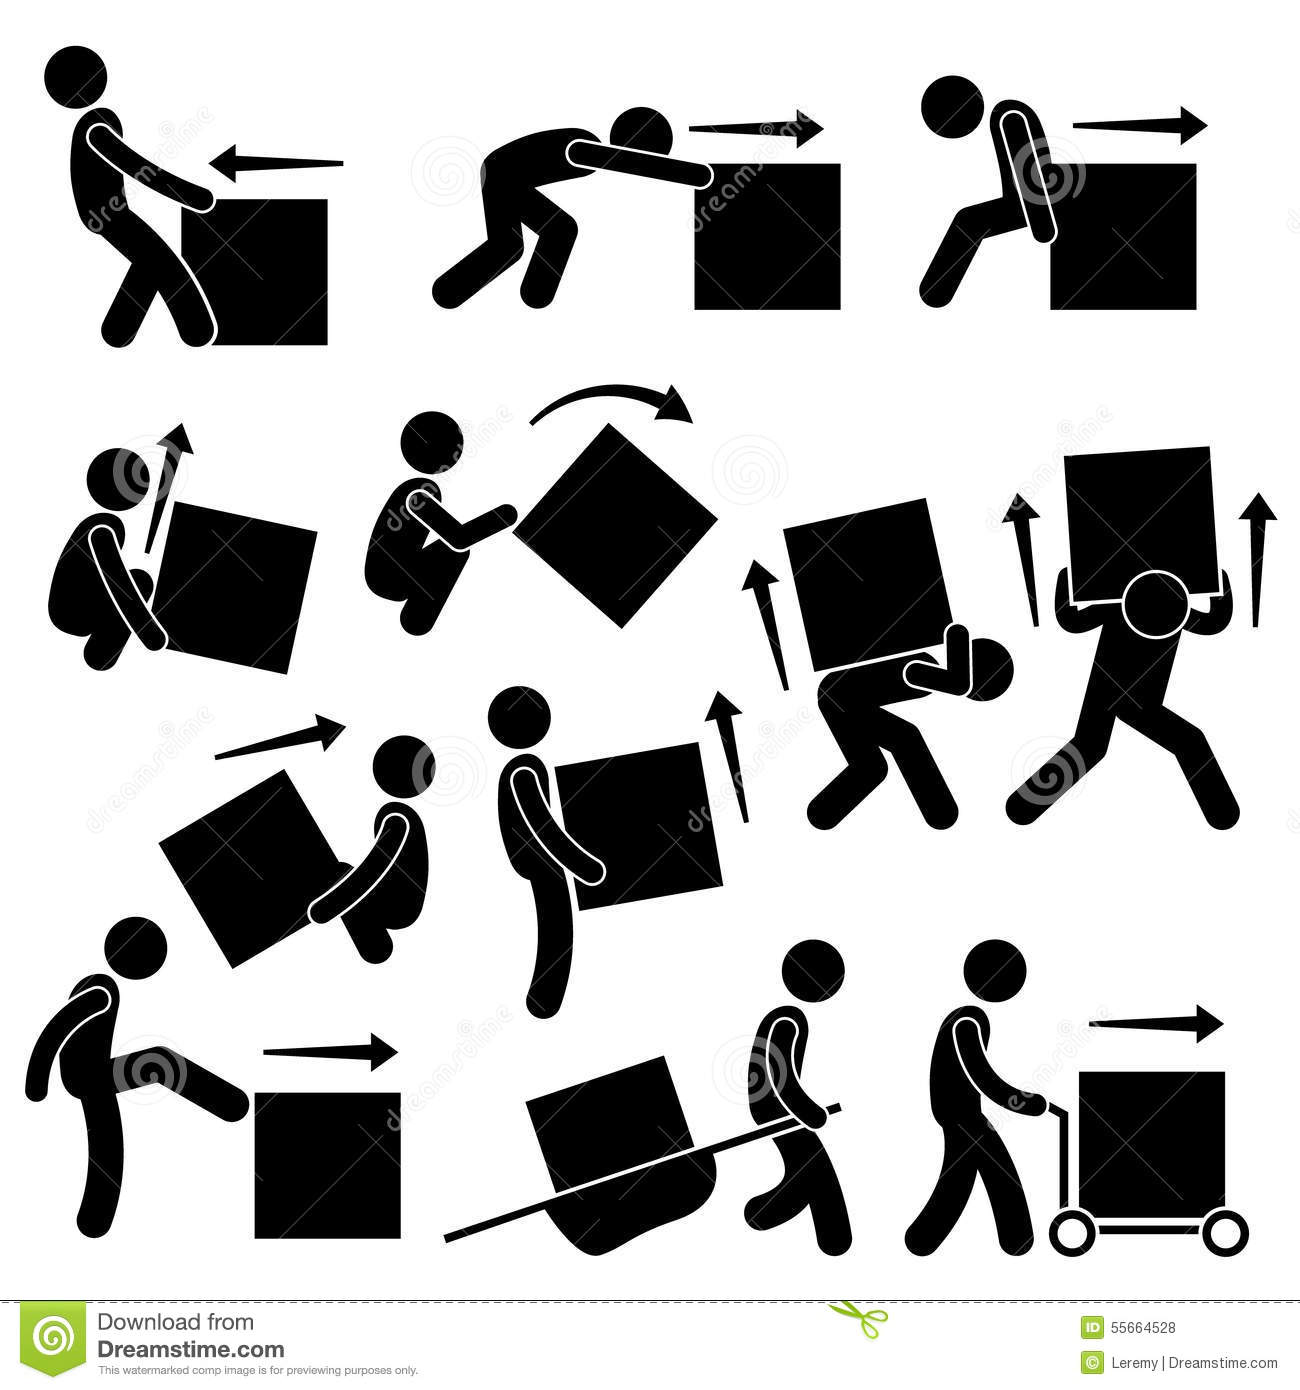 hight resolution of moving actions stock illustrations 296 moving actions stock illustrations vectors clipart dreamstime